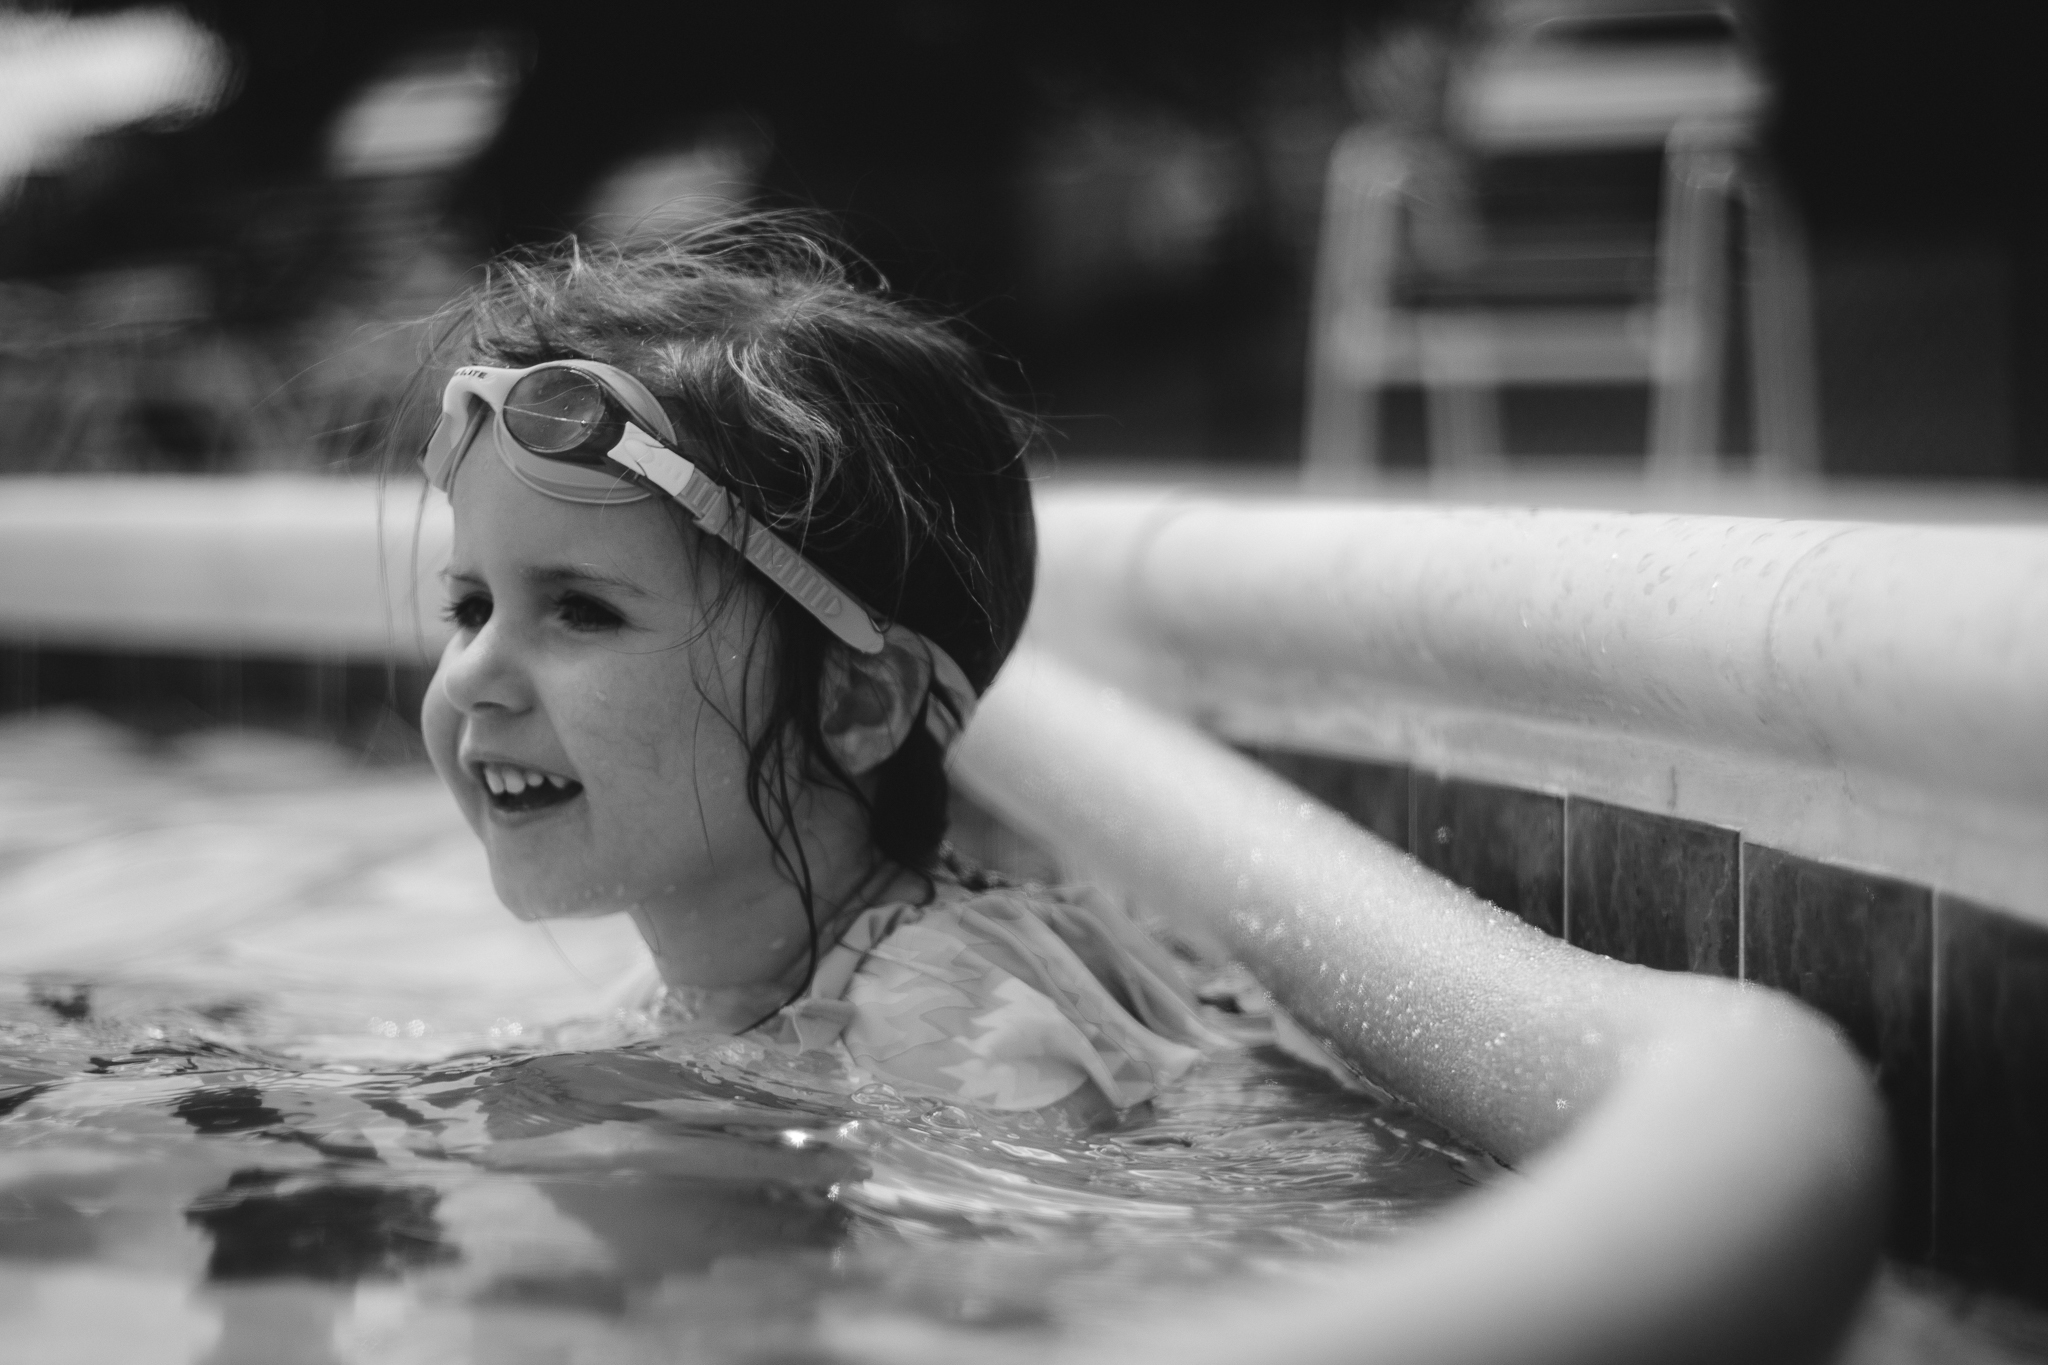 black and white portrait of girl in pool summer Ashburn Loudoun Northern Virginia family lifestyle documentary childhood Marti Austin Photography